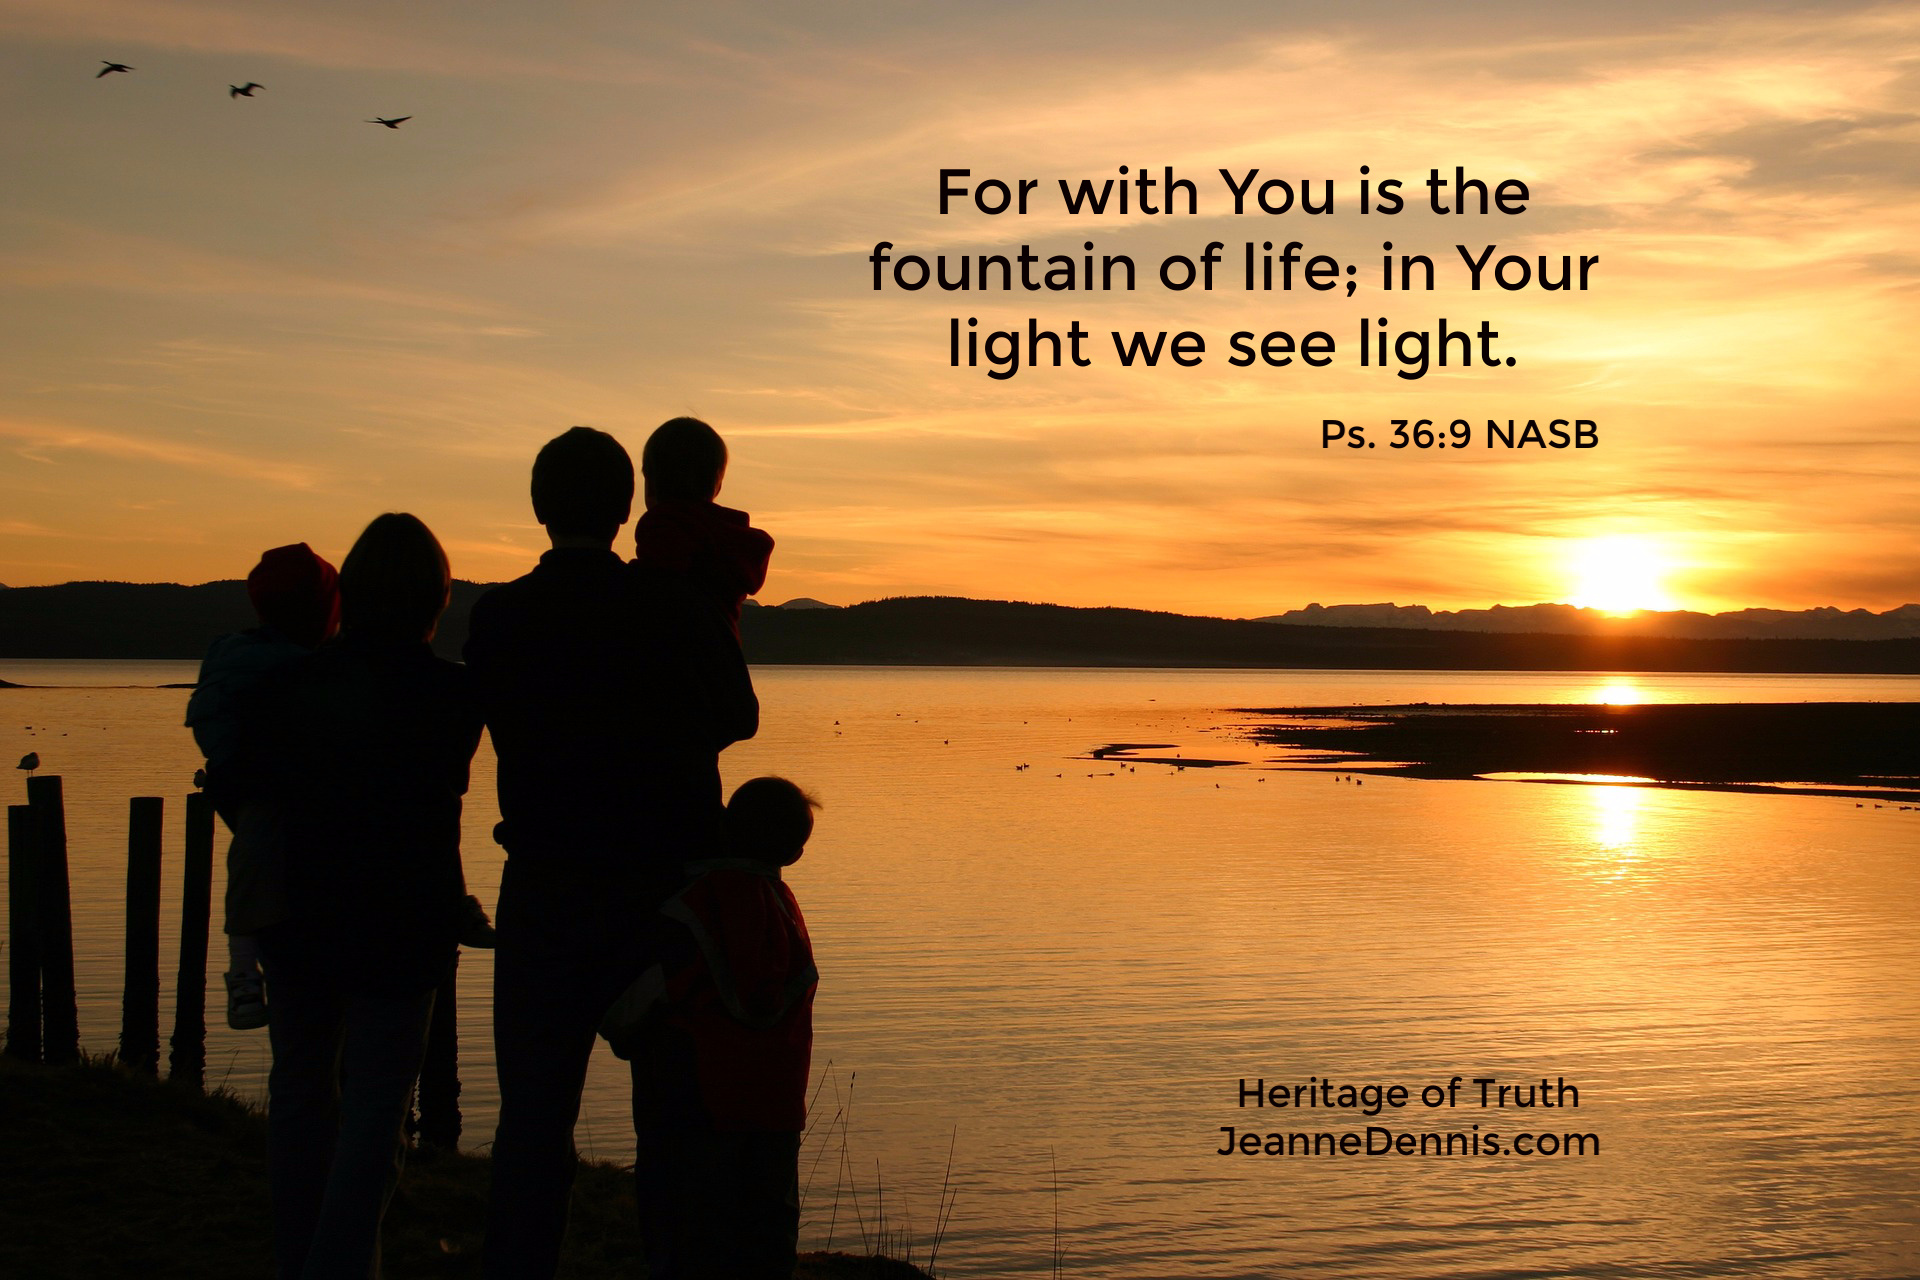 """For with You is the fountain of life; in Your light we see light."" Ps. 36:9, Heritage of Truth, JeanneDennis.com"